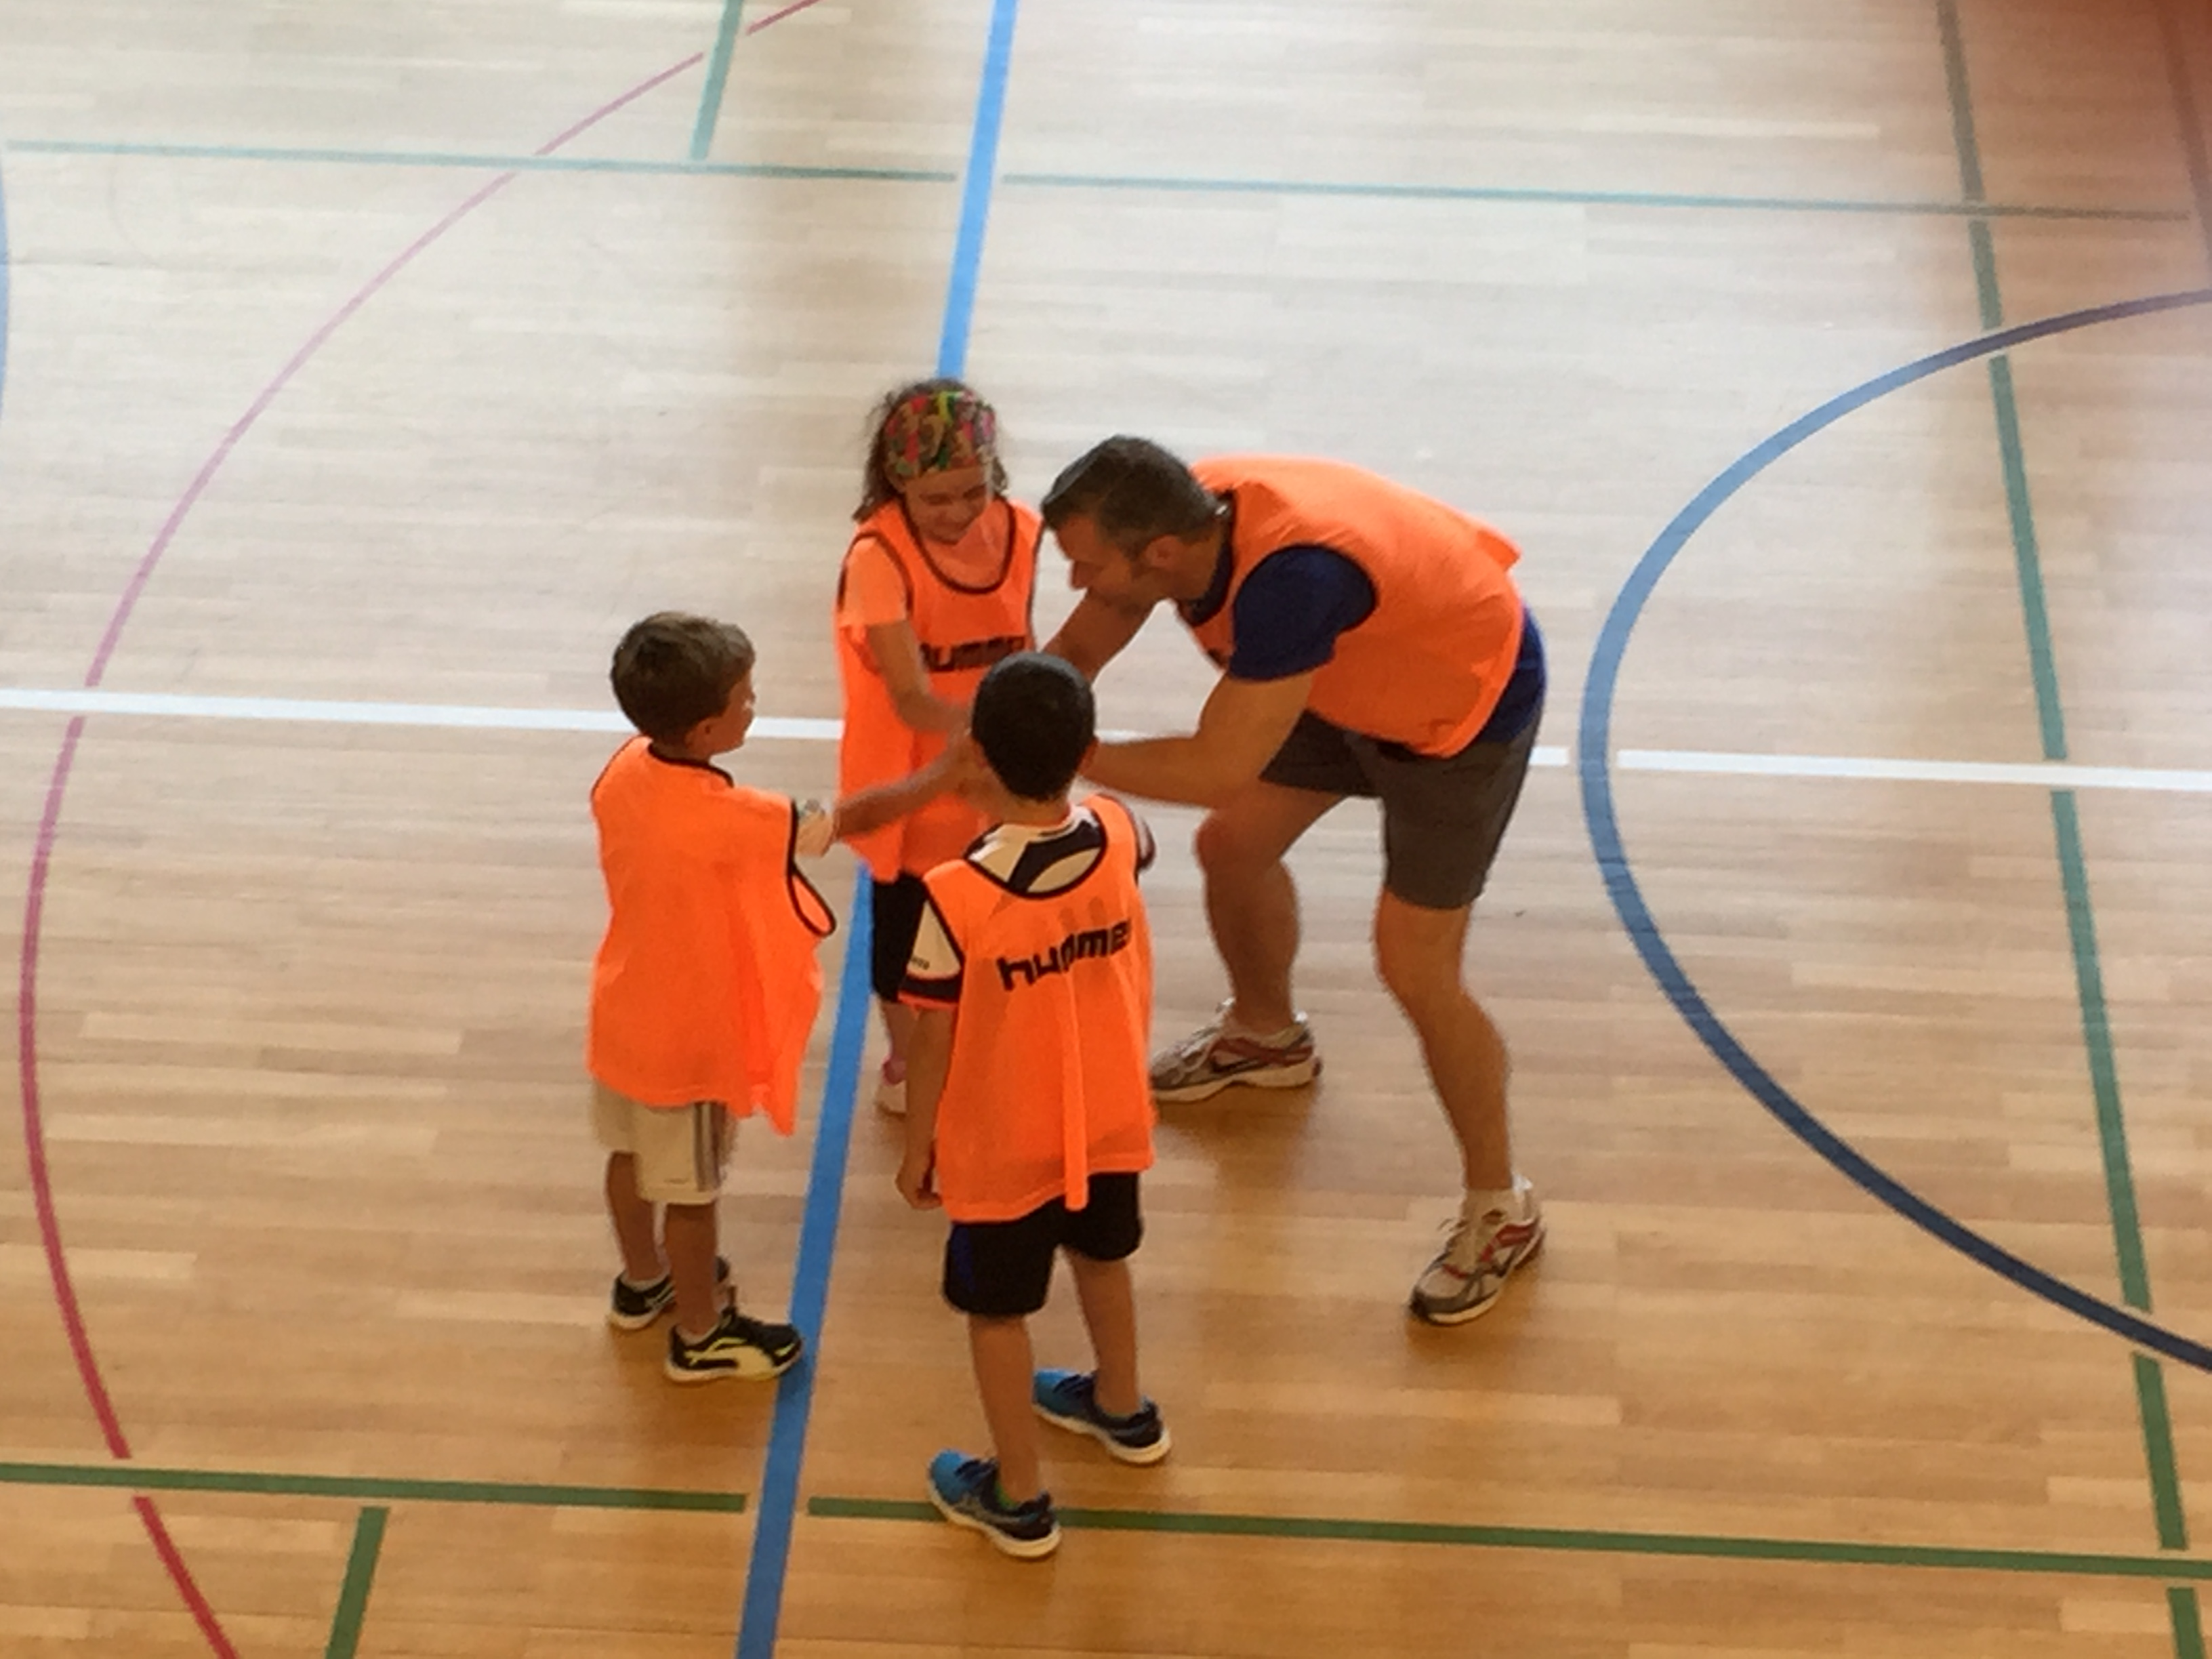 Tournoi parents enfants 2016